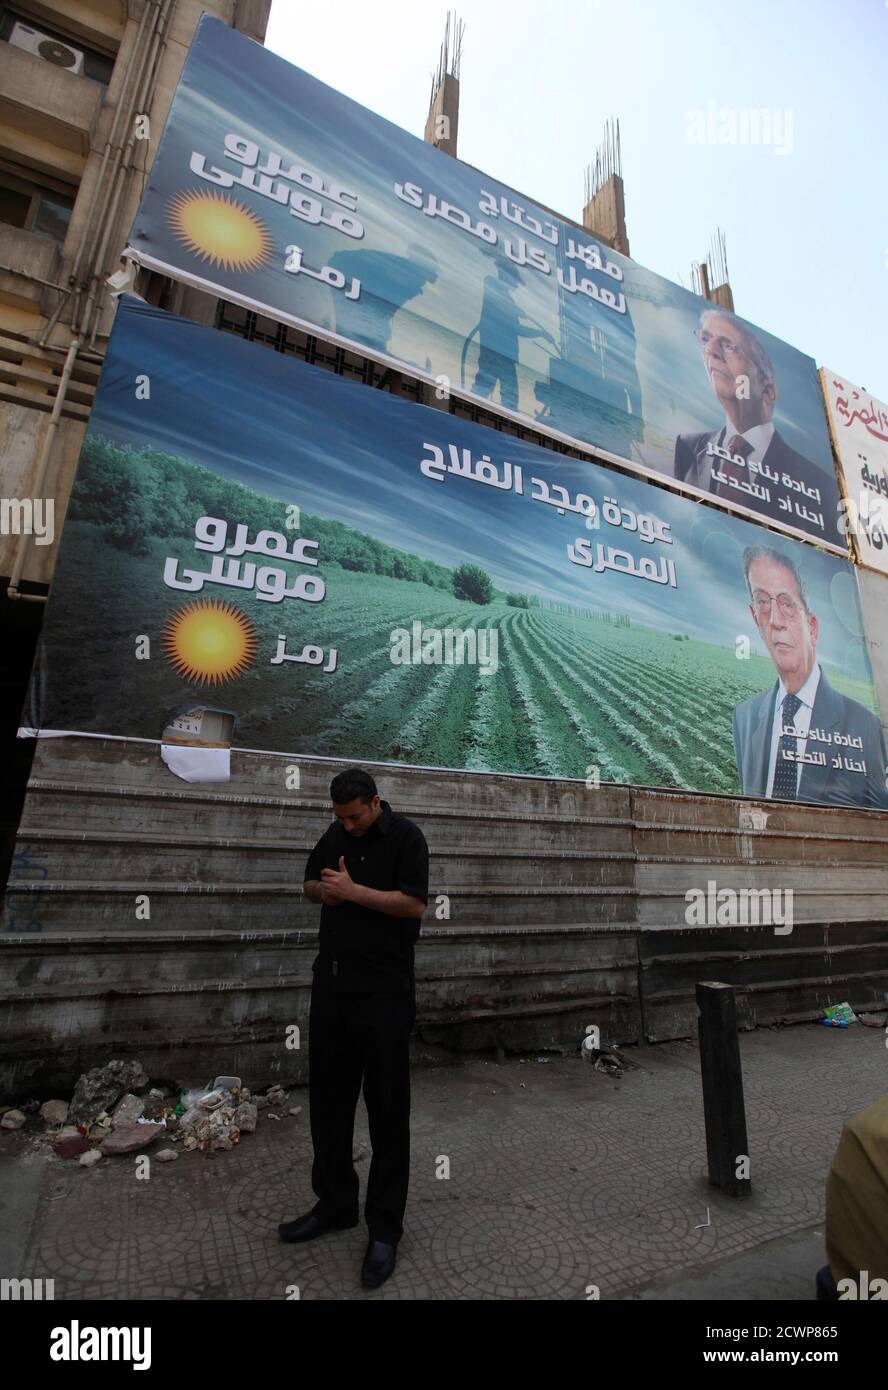 """A man looks at his mobile phone below campaign election billboards of presidential candidate and former Arab League secretary general Amr Moussa in Cairo, May 7, 2012. Voting starts on May 23-24 in the election to choose a new president after Hosni Mubarak was turfed out of office last year. The billboard reads, """"Amr Moussa, we are up to the challenge."""" REUTERS/Amr Abdallah Dalsh  (EGYPT - Tags: POLITICS ELECTIONS) Stock Photo"""